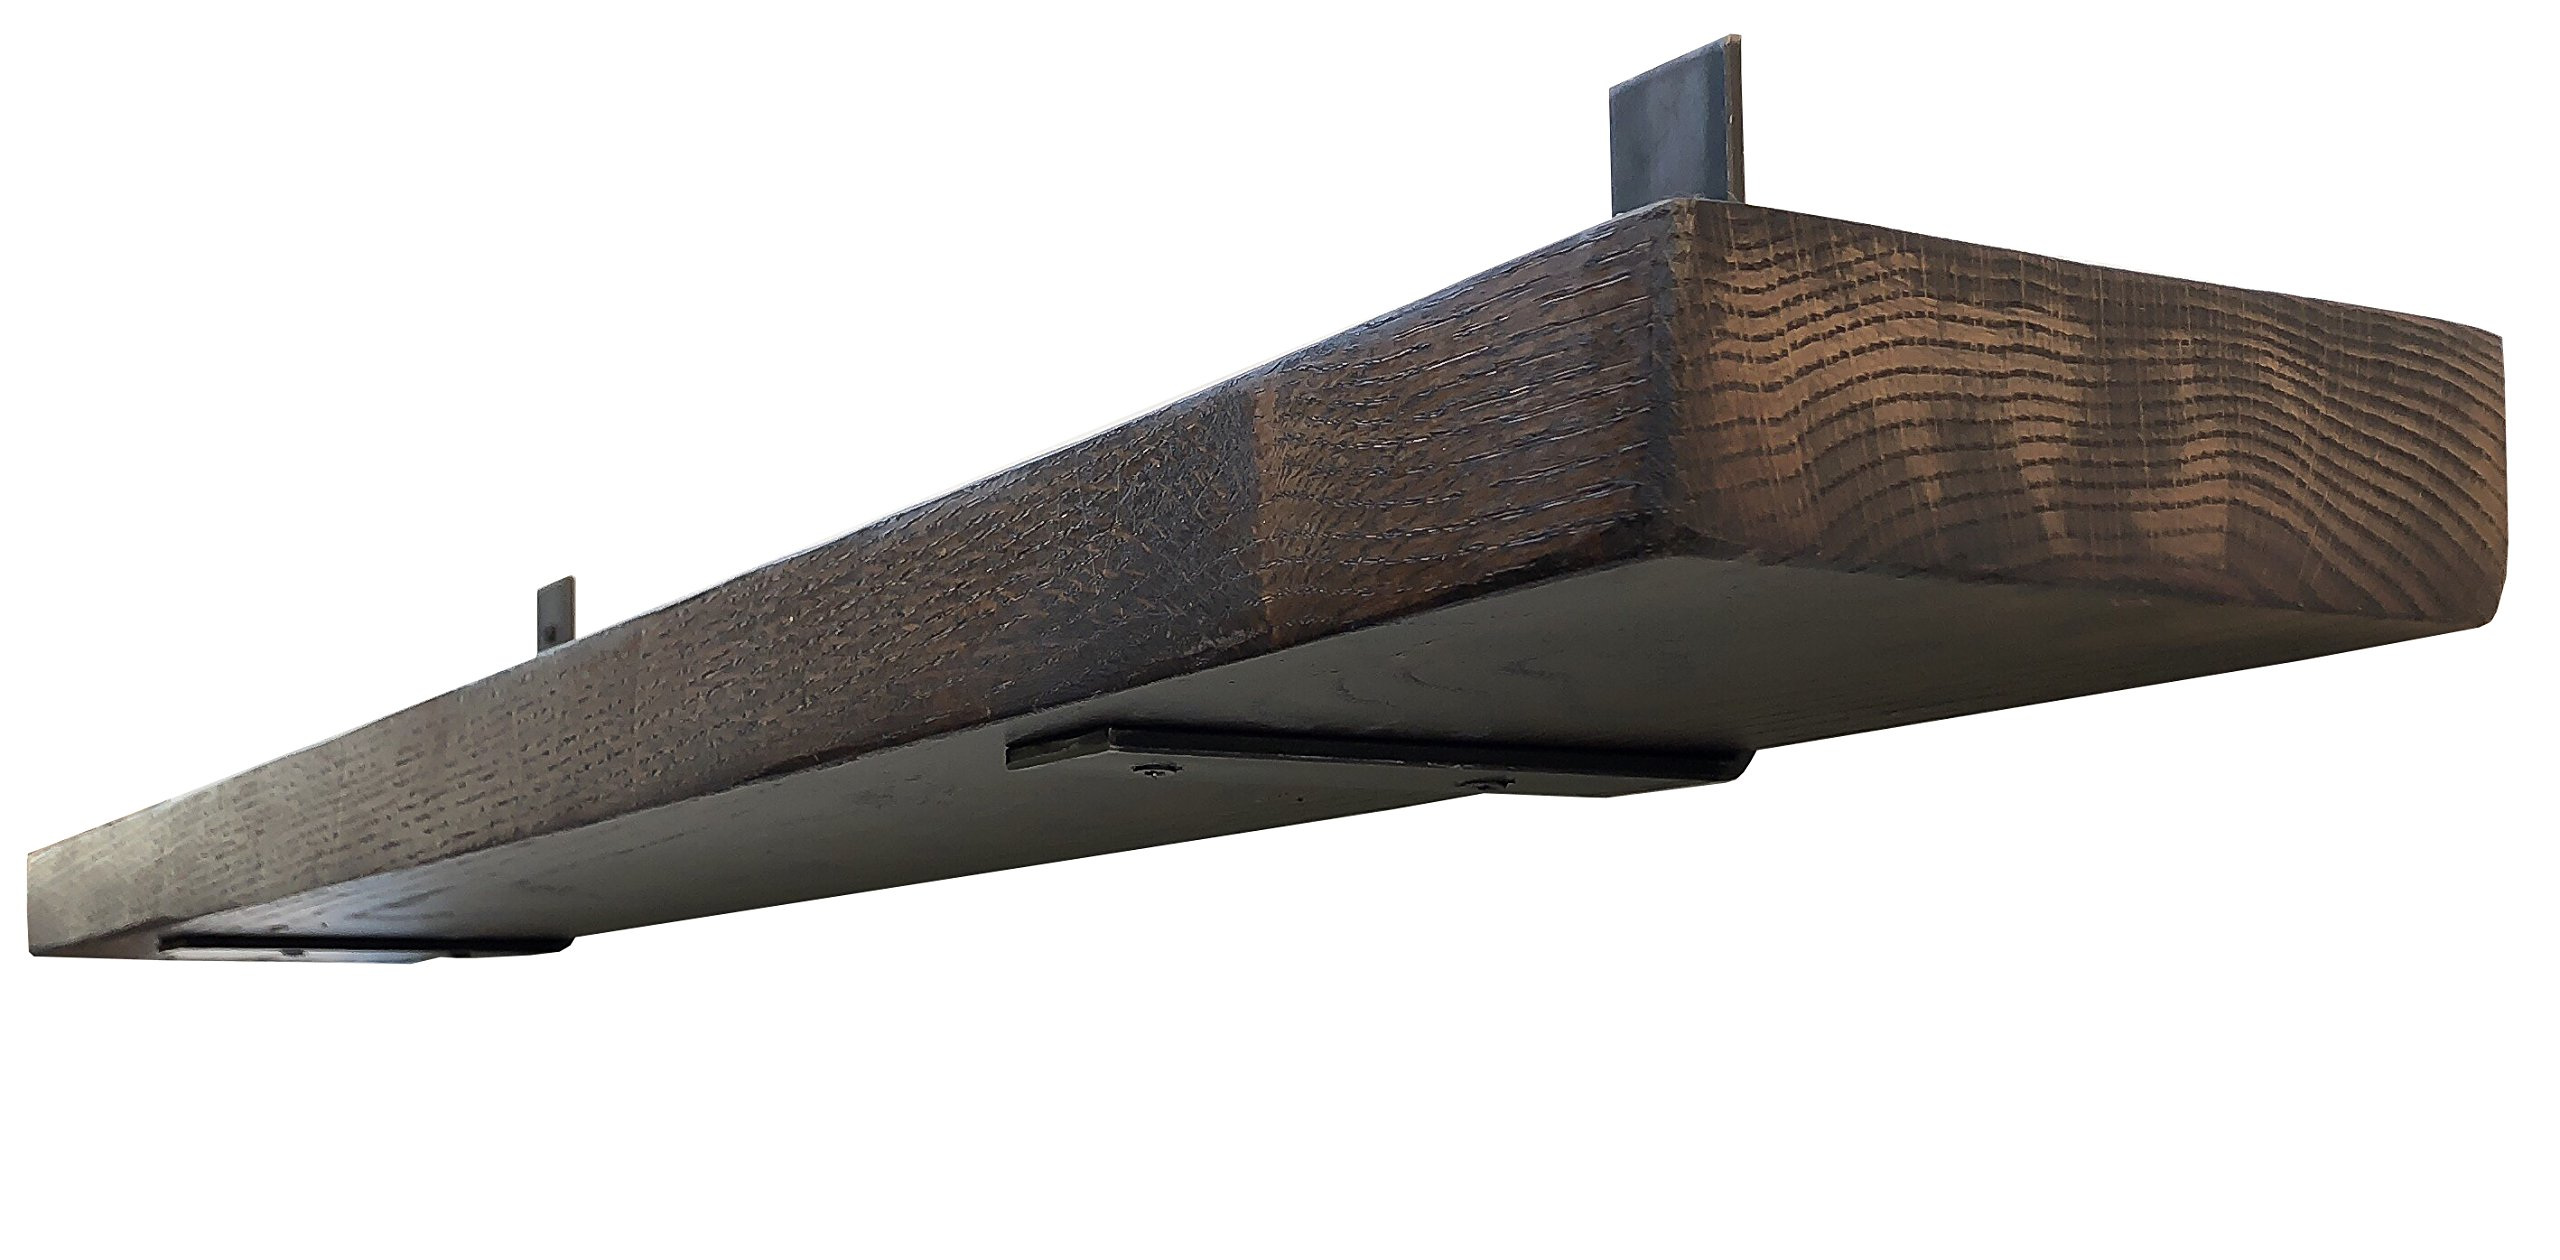 """DIY CARTEL Made in USA Industrial Forged Steel Floating Shelf L/J Bracket - Heavy Duty Rustic Shelf Brackets- Raw Hot Rolled Steel/Metal - Floating Shelf Hardware - 2 Pack (6"""" x 6"""" No Lip) - A USA PRODUCT YOU CAN TRUST: Our heavy duty floating shelf brackets are proudly crafted in the USA from premium quality raw metal. Industrial strength construction guarantees high durability, ensuring that our wall mounted shelf brackets can hold upwards of 60+lbs when mounted into a stud. NO HASSLE INSTALLATION WHEREVER YOU DESIRE: Whether you are a home or business owner, contractor, carpenter or DIY'er, you can easily put our metal shelf brackets up in minutes. 4 pre-made holes in each bracket allow for a quick hassle free installation. (Due to customers mounting the brackets into different types of material, screws and mounting hardware are NOT included). OPTIMAL DESIGN SUITS ANY STYLE: Our forged steel shelf brackets will compliment any décor whether it's farmhouse, rustic, vintage, industrial or steampunk! The minimalist, industrial, chic, modern yet rustic design, make them the perfect addition to your home, kitchen, garage, business and office. You can use and re-use our brackets anywhere you want! - wall-shelves, living-room-furniture, living-room - 71xXJpb6jcL -"""